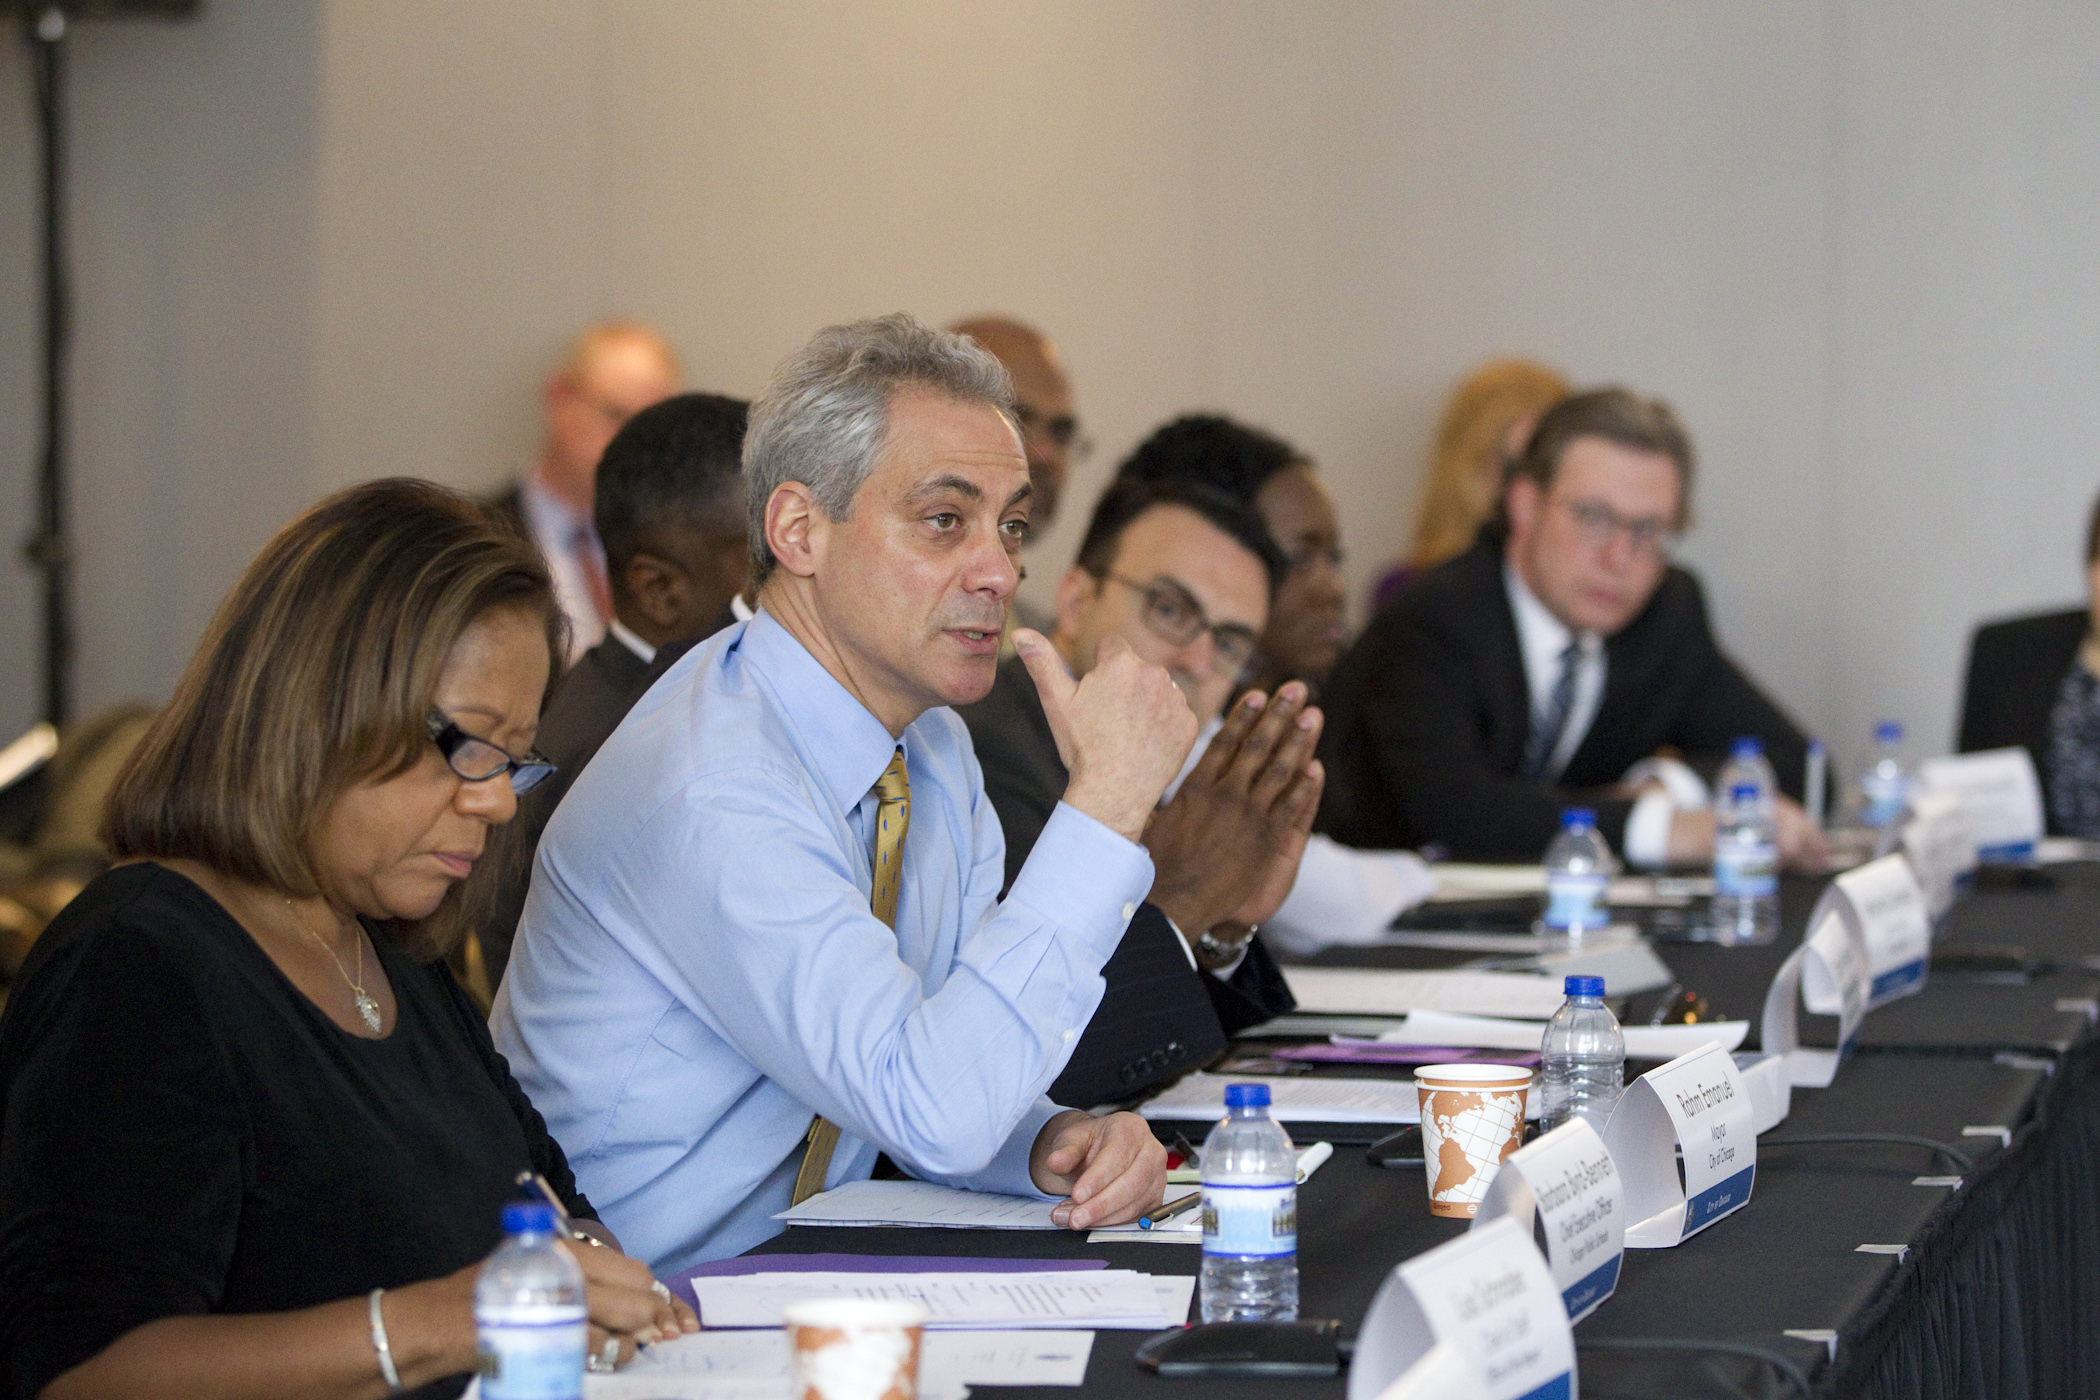 Mayor Emanuel convenes cabinet to discuss City-wide coordination to support Chicago's students.